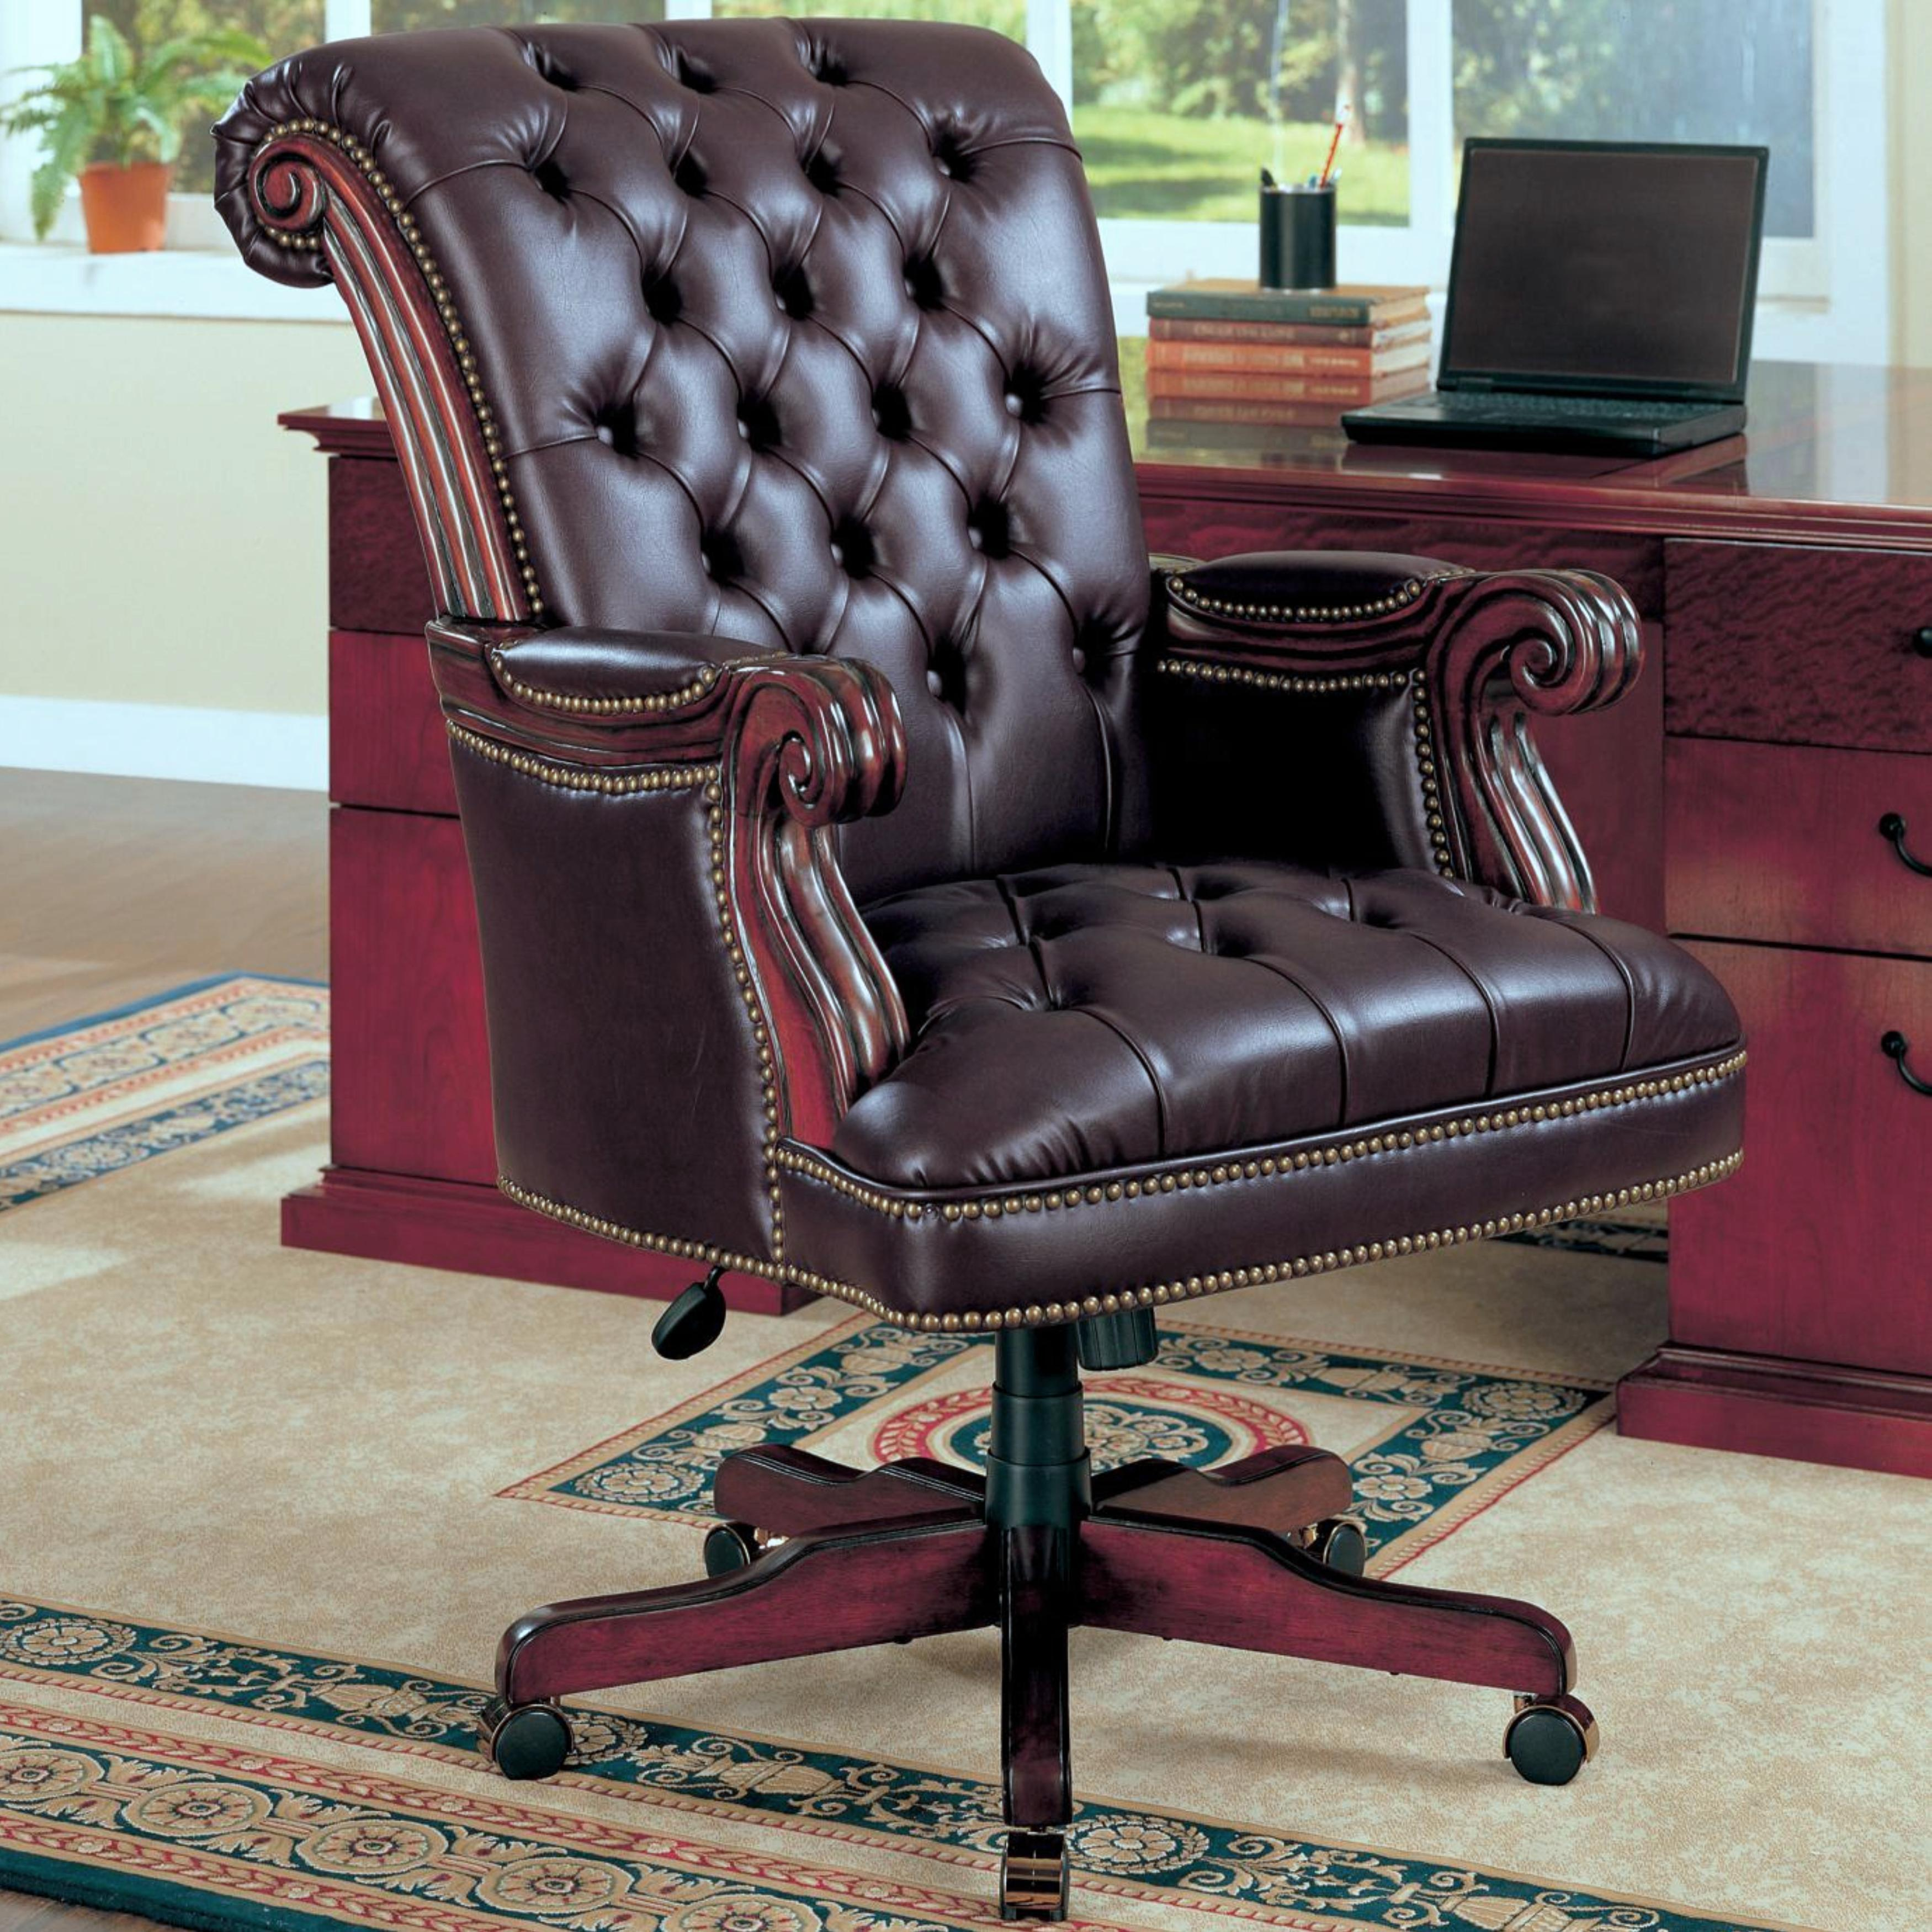 Plush Rolled Back Design Traditional Button Tufted Executive Office Chair With Nailhead Trim On Sale Overstock 12298351 Brown